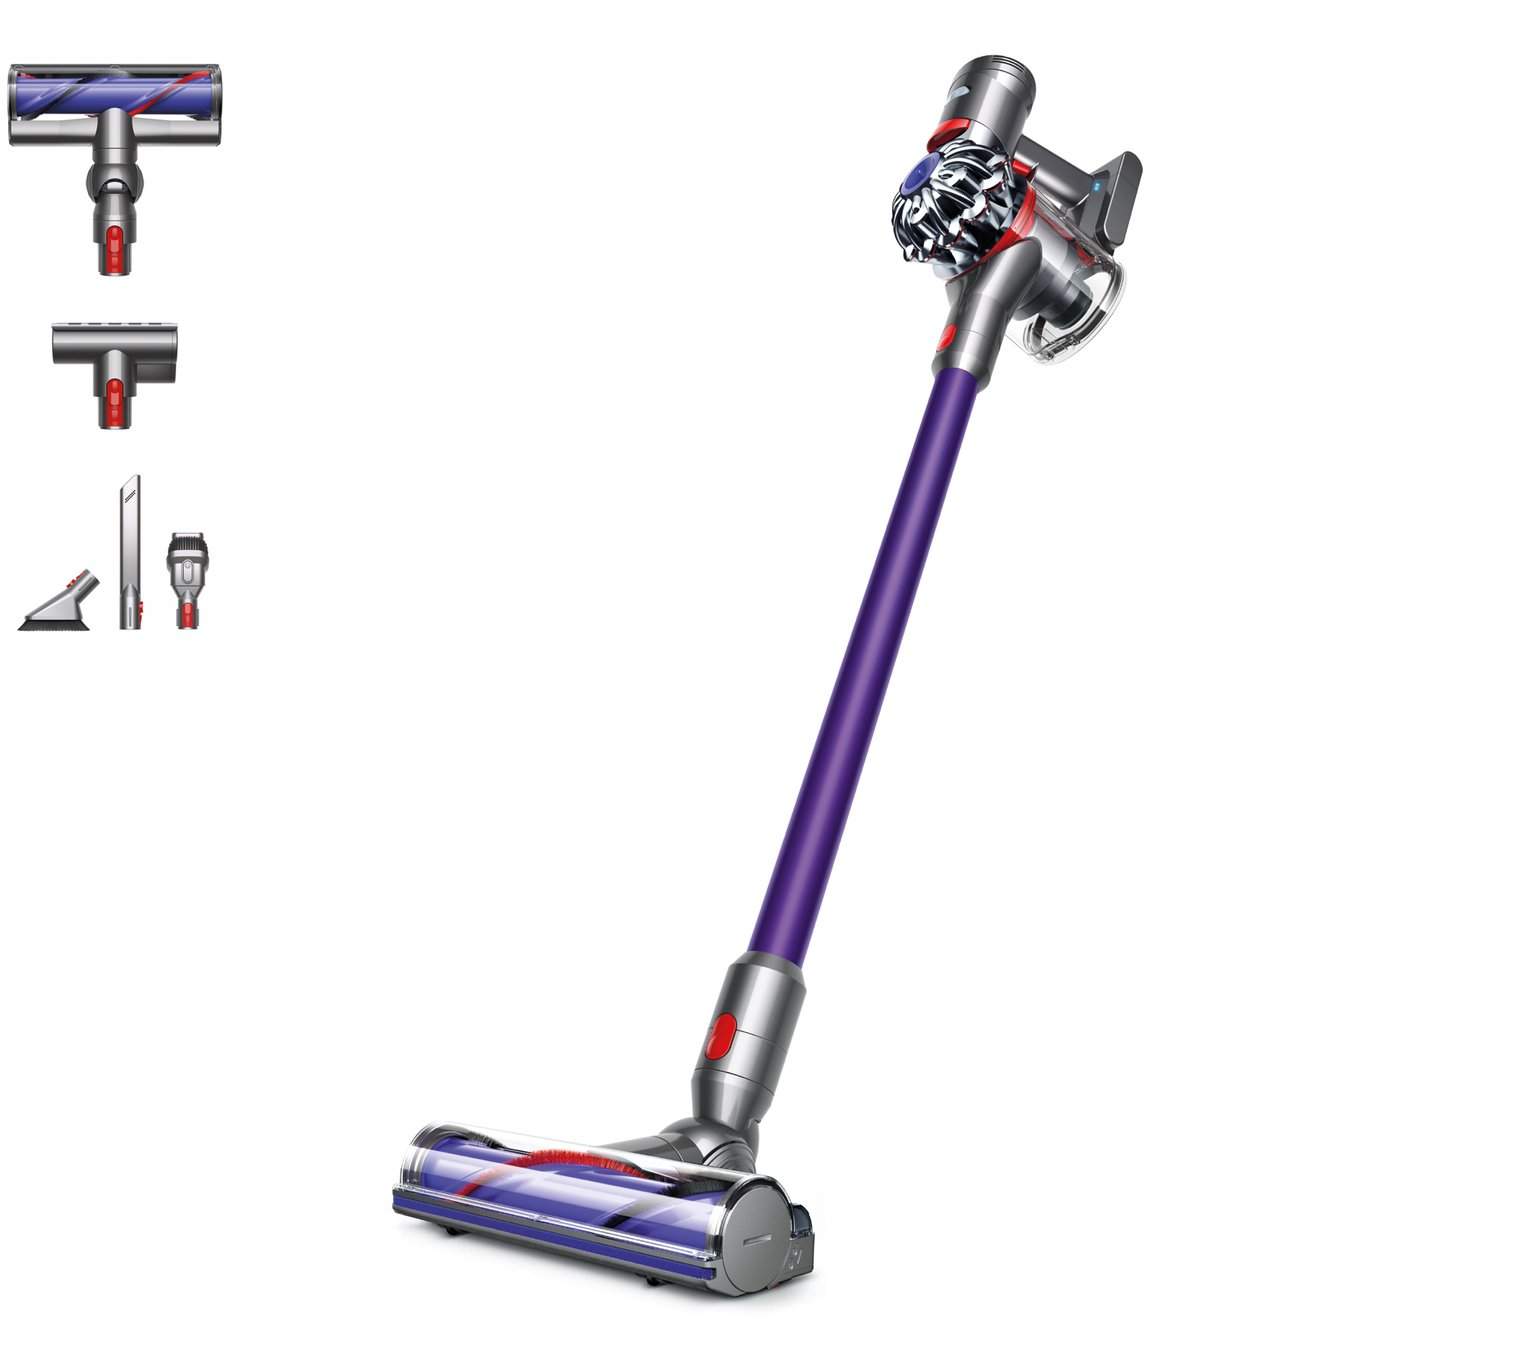 dyson v7 animal cordless vacuum cleaner octer. Black Bedroom Furniture Sets. Home Design Ideas